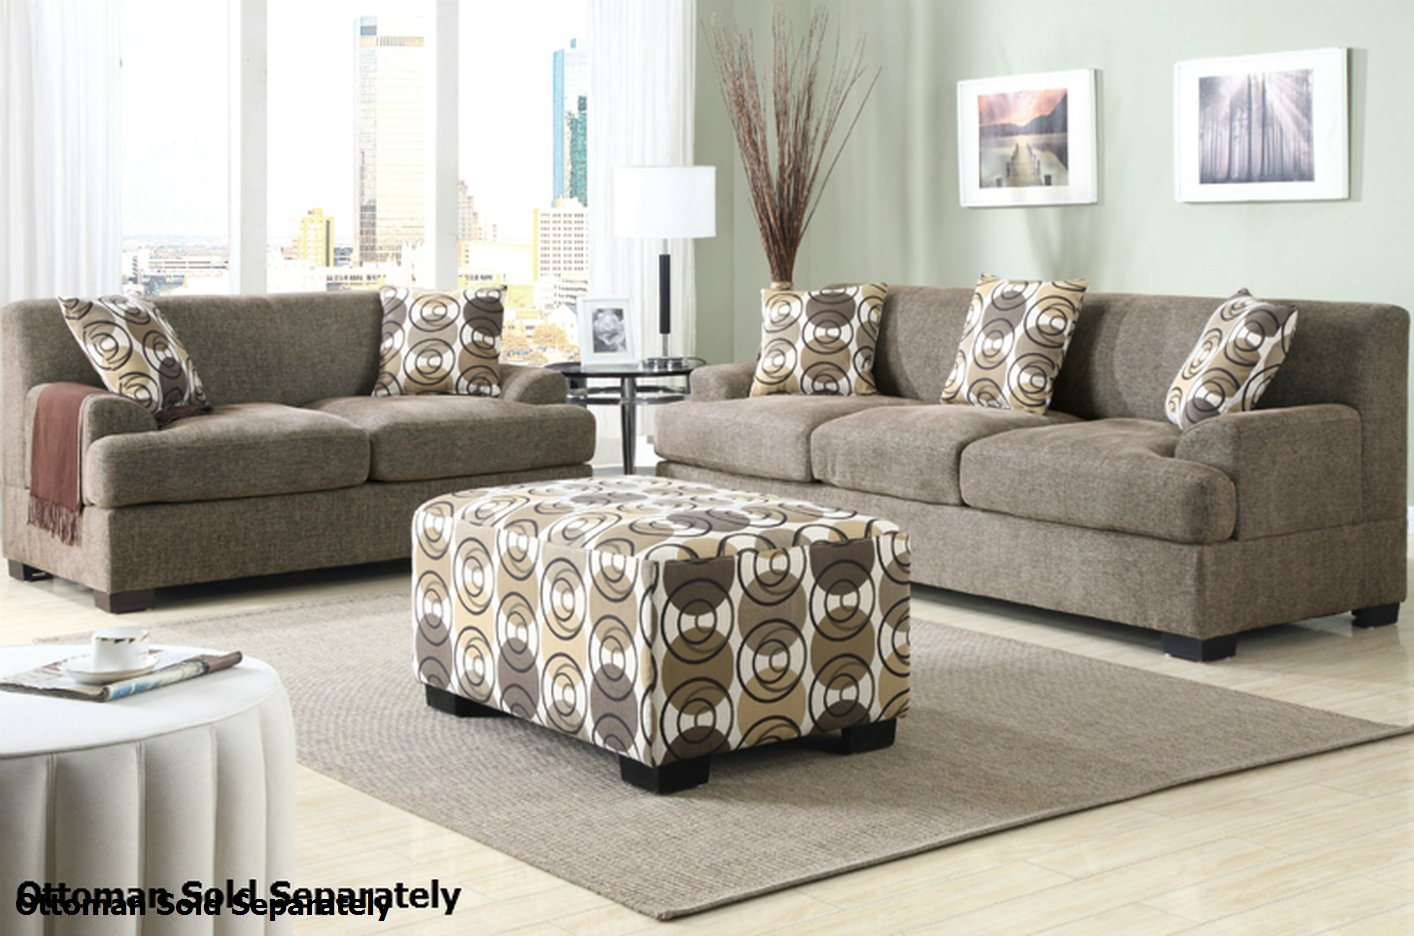 Sofa Beige Montreal Beige Fabric Sofa And Loveseat Set